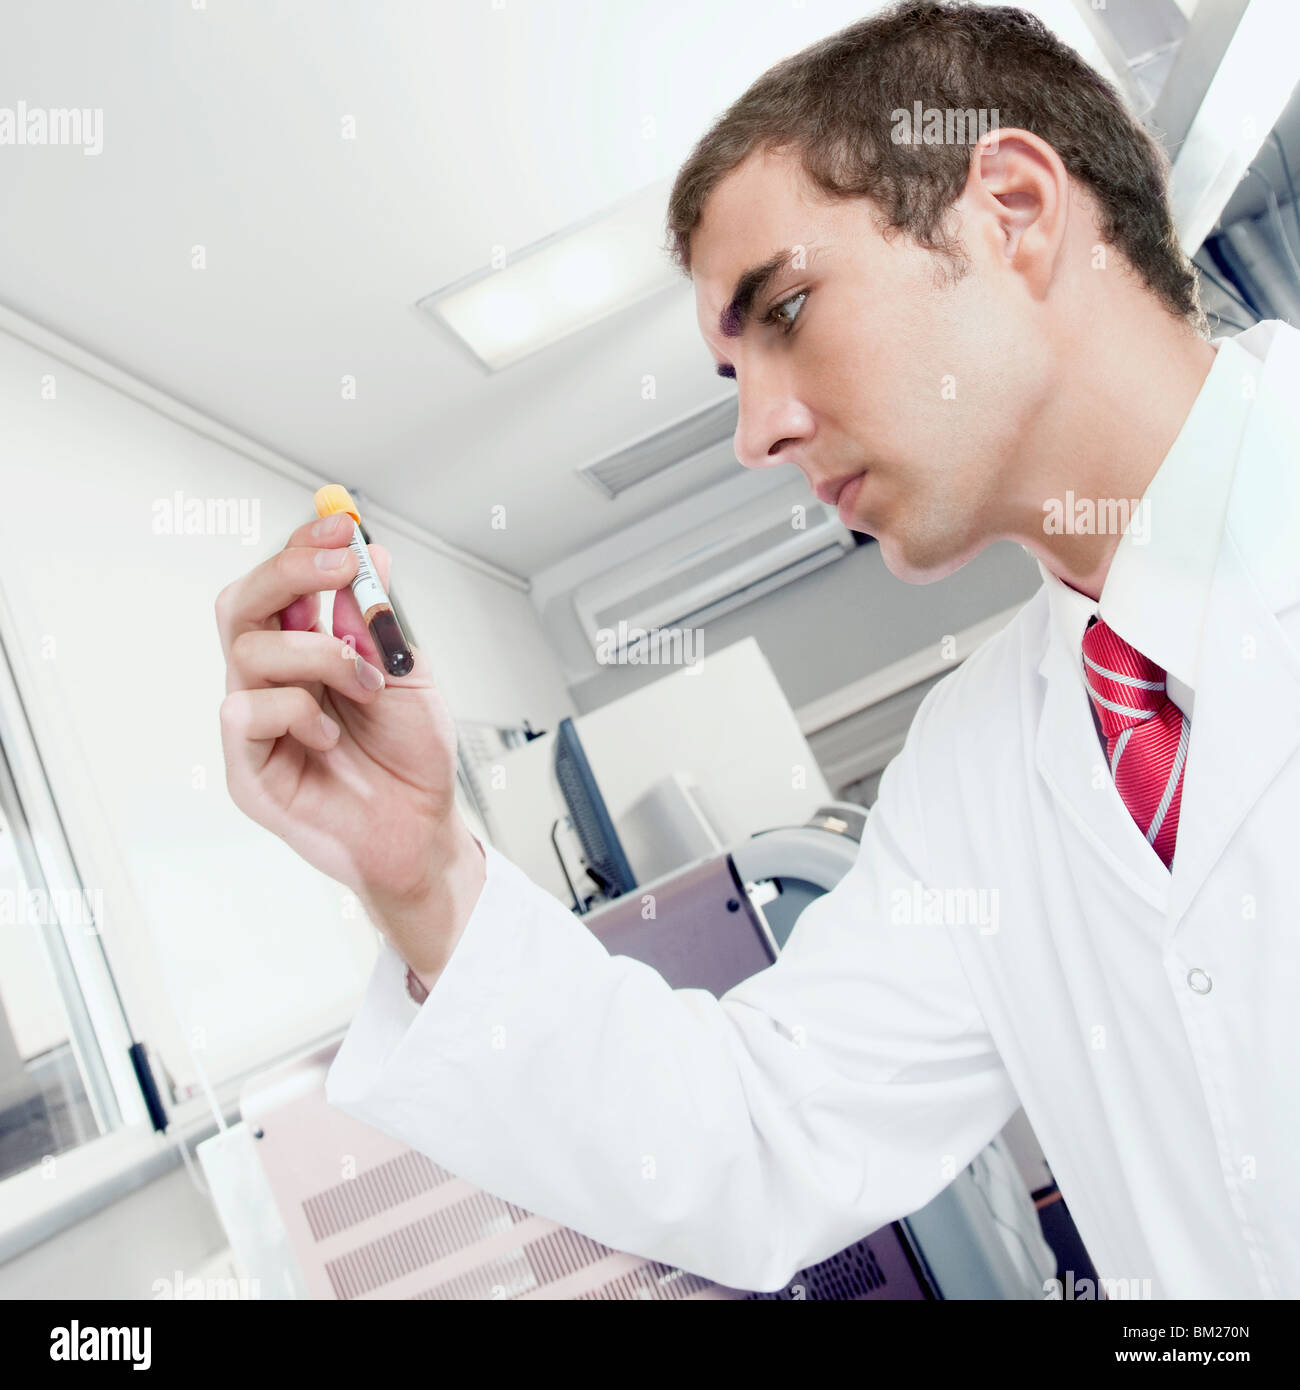 Lab technician testing a blood sample in a test tube - Stock Image